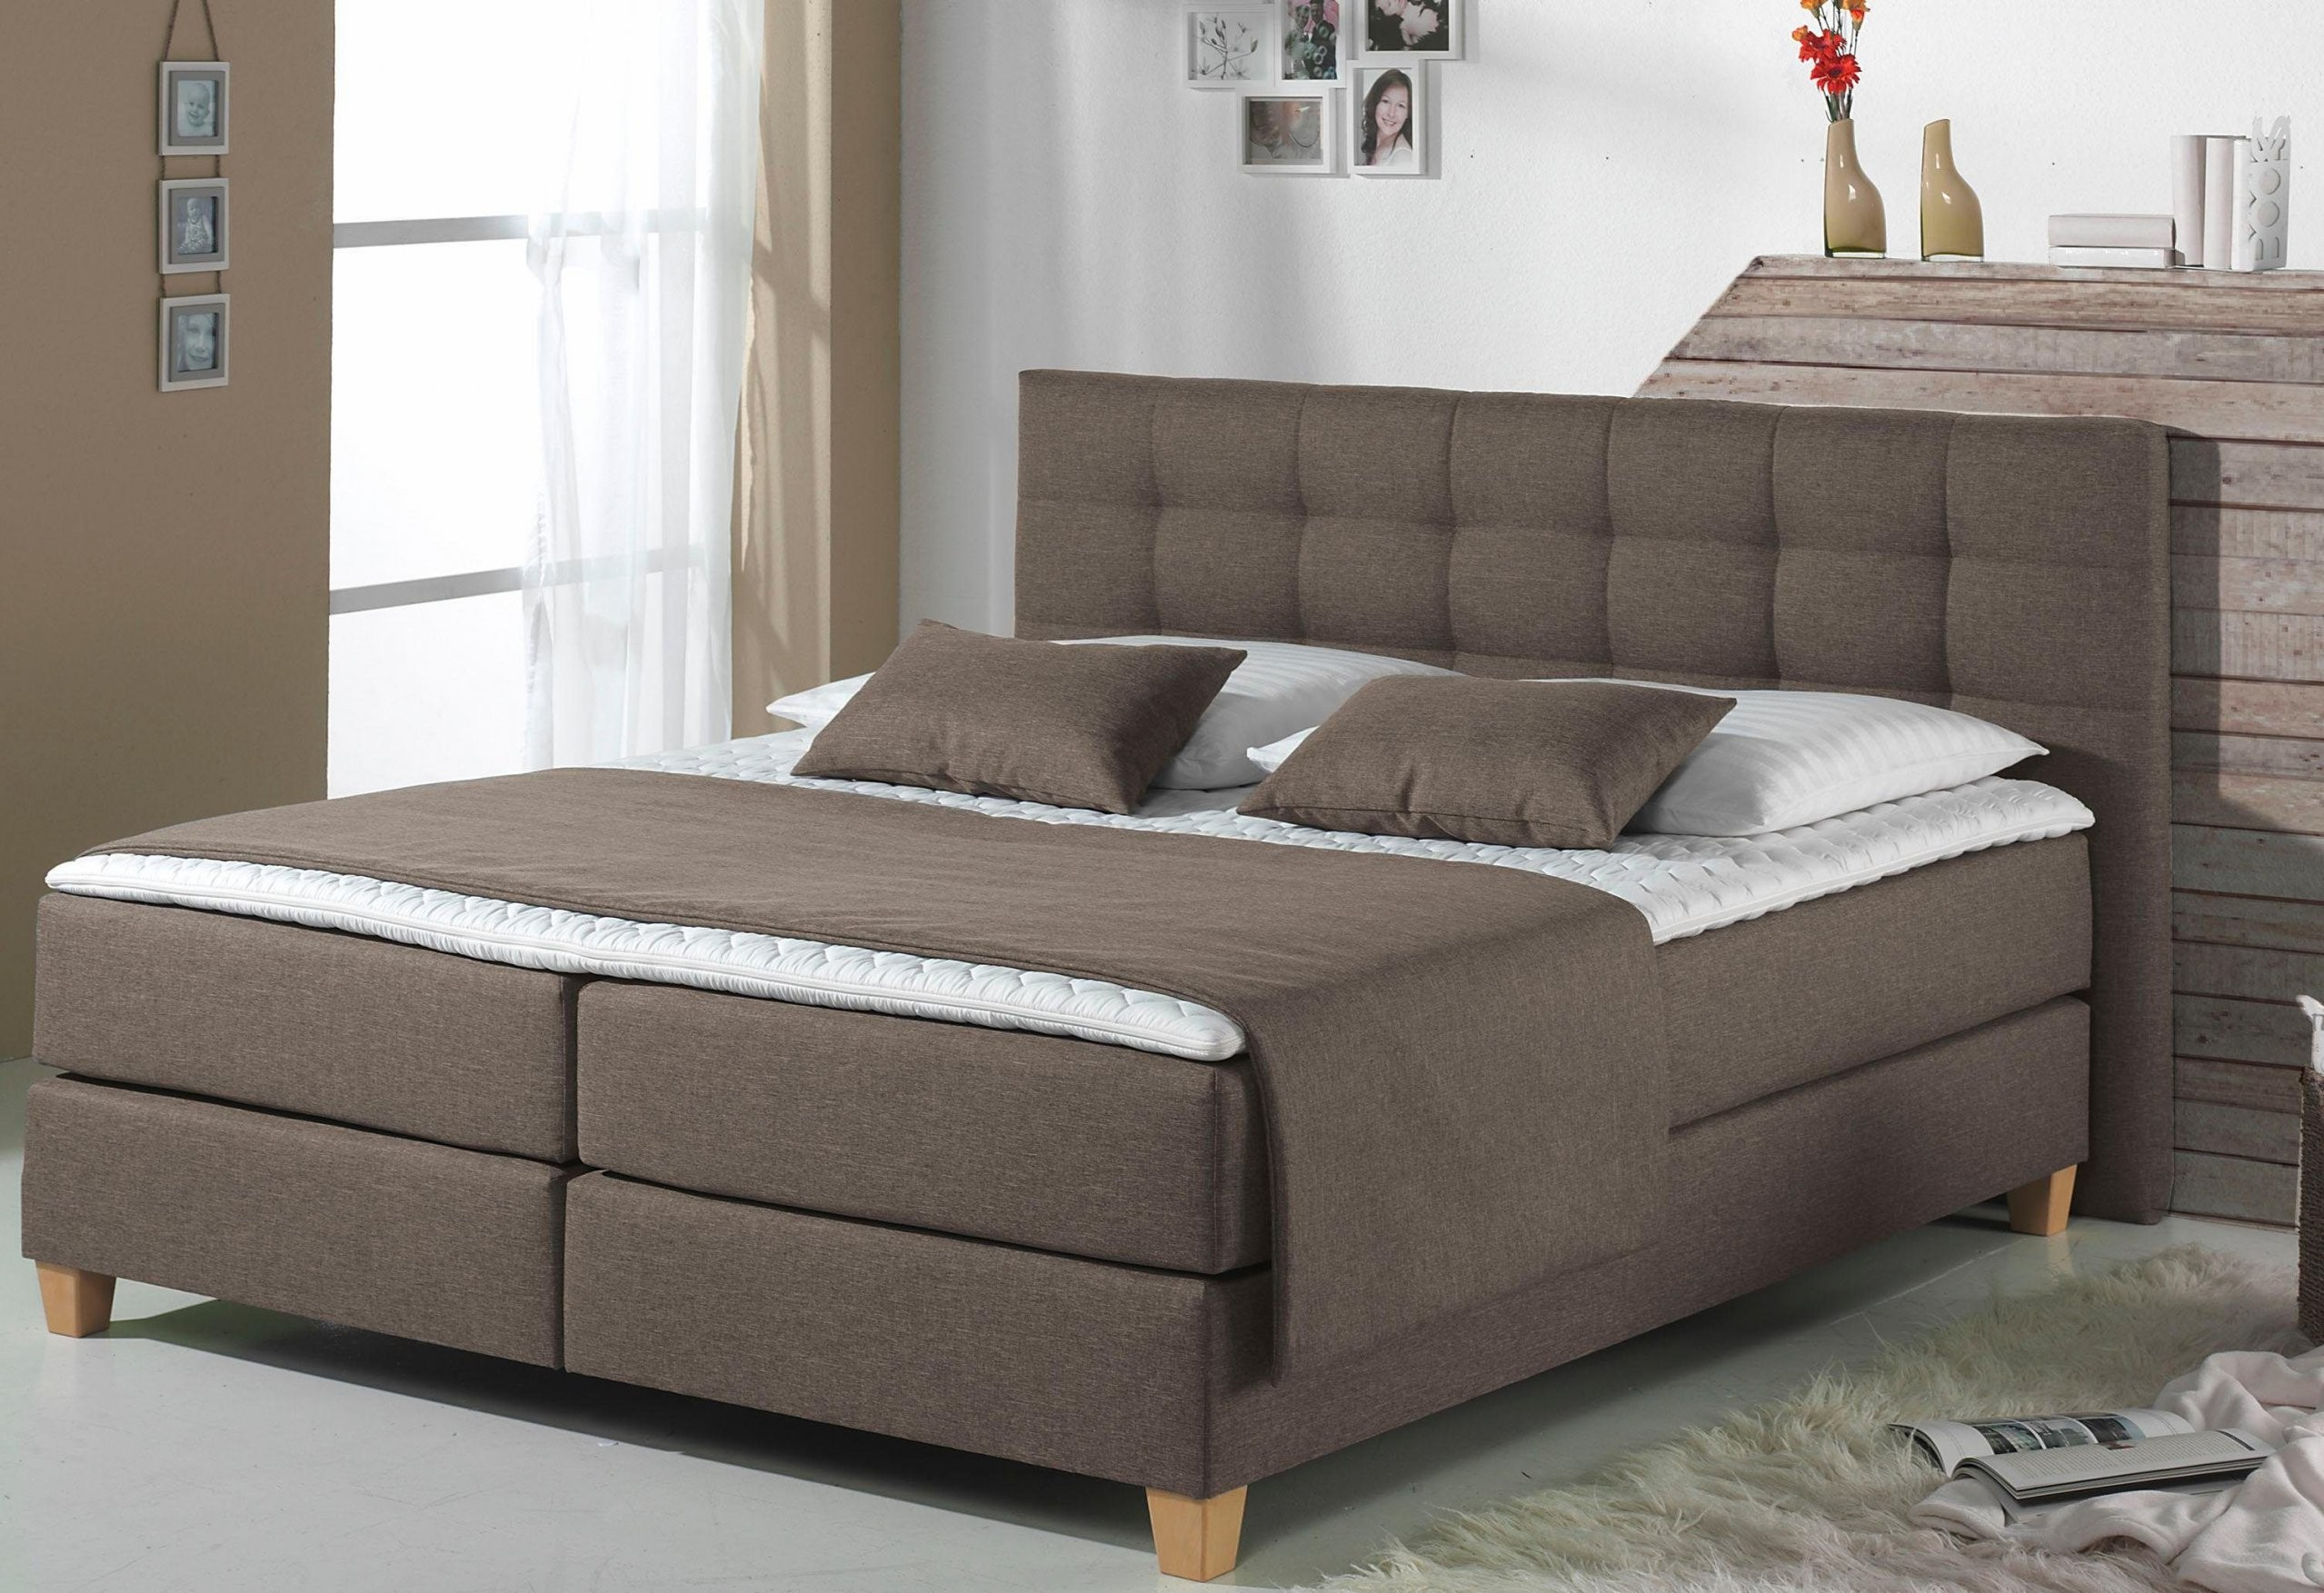 Home Affaire Boxspringbett Tommy Inkl Kaltschaumtopper 5 Breiten von Boxspring Bett Home Affaire Bild